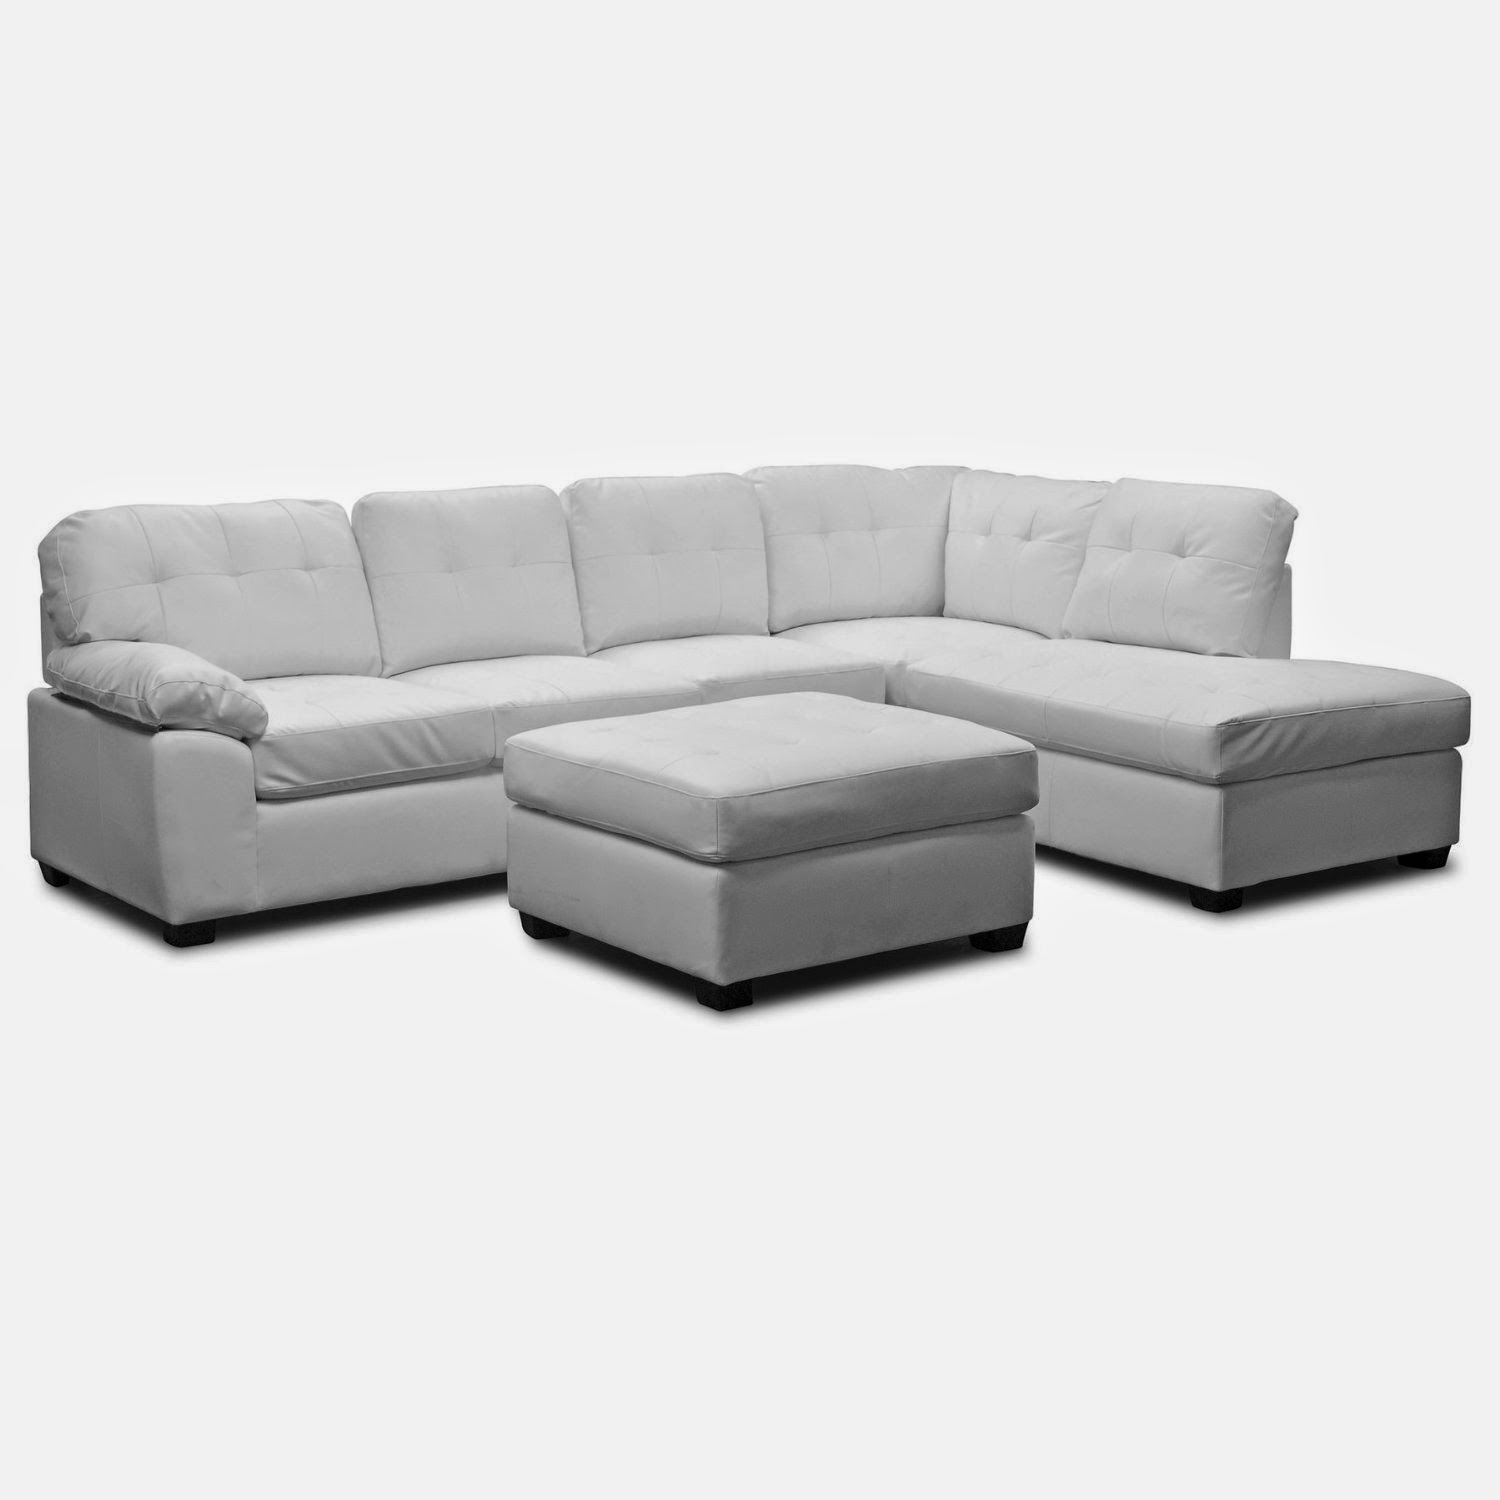 huge italian white leather modern sectional sofa set twin bed sleeper oversized couches: couches